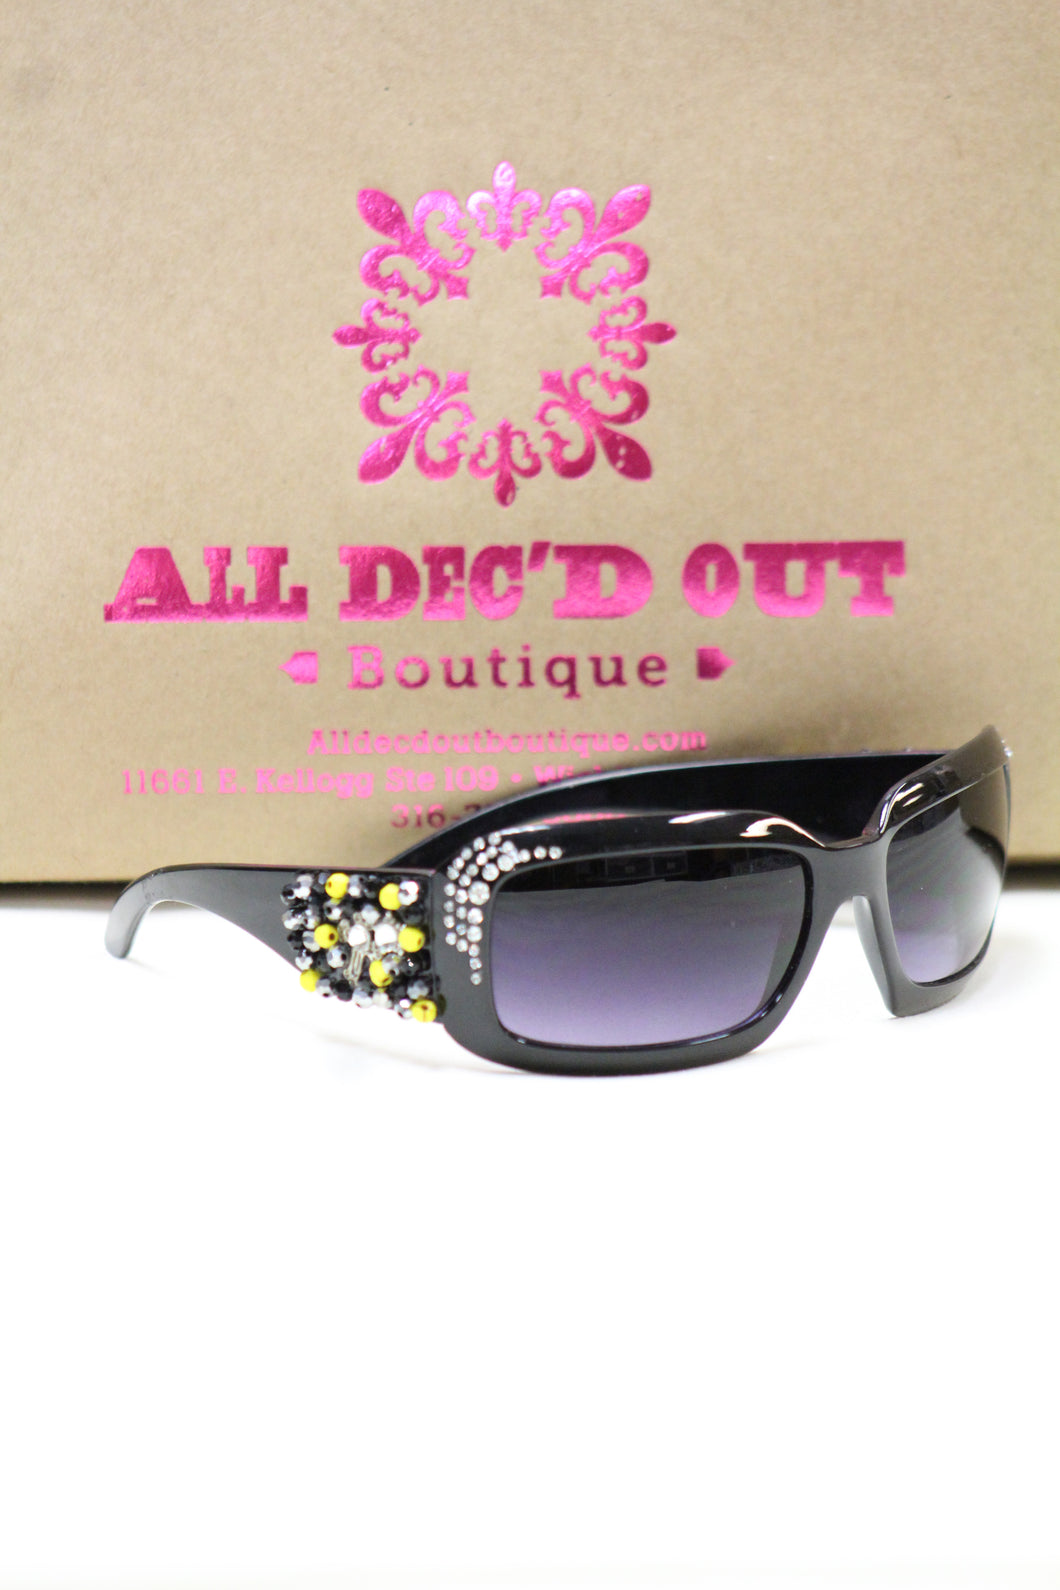 ADO | Customized Sunglasses Black with Yellow Beads & Silver Cross - All Decd Out